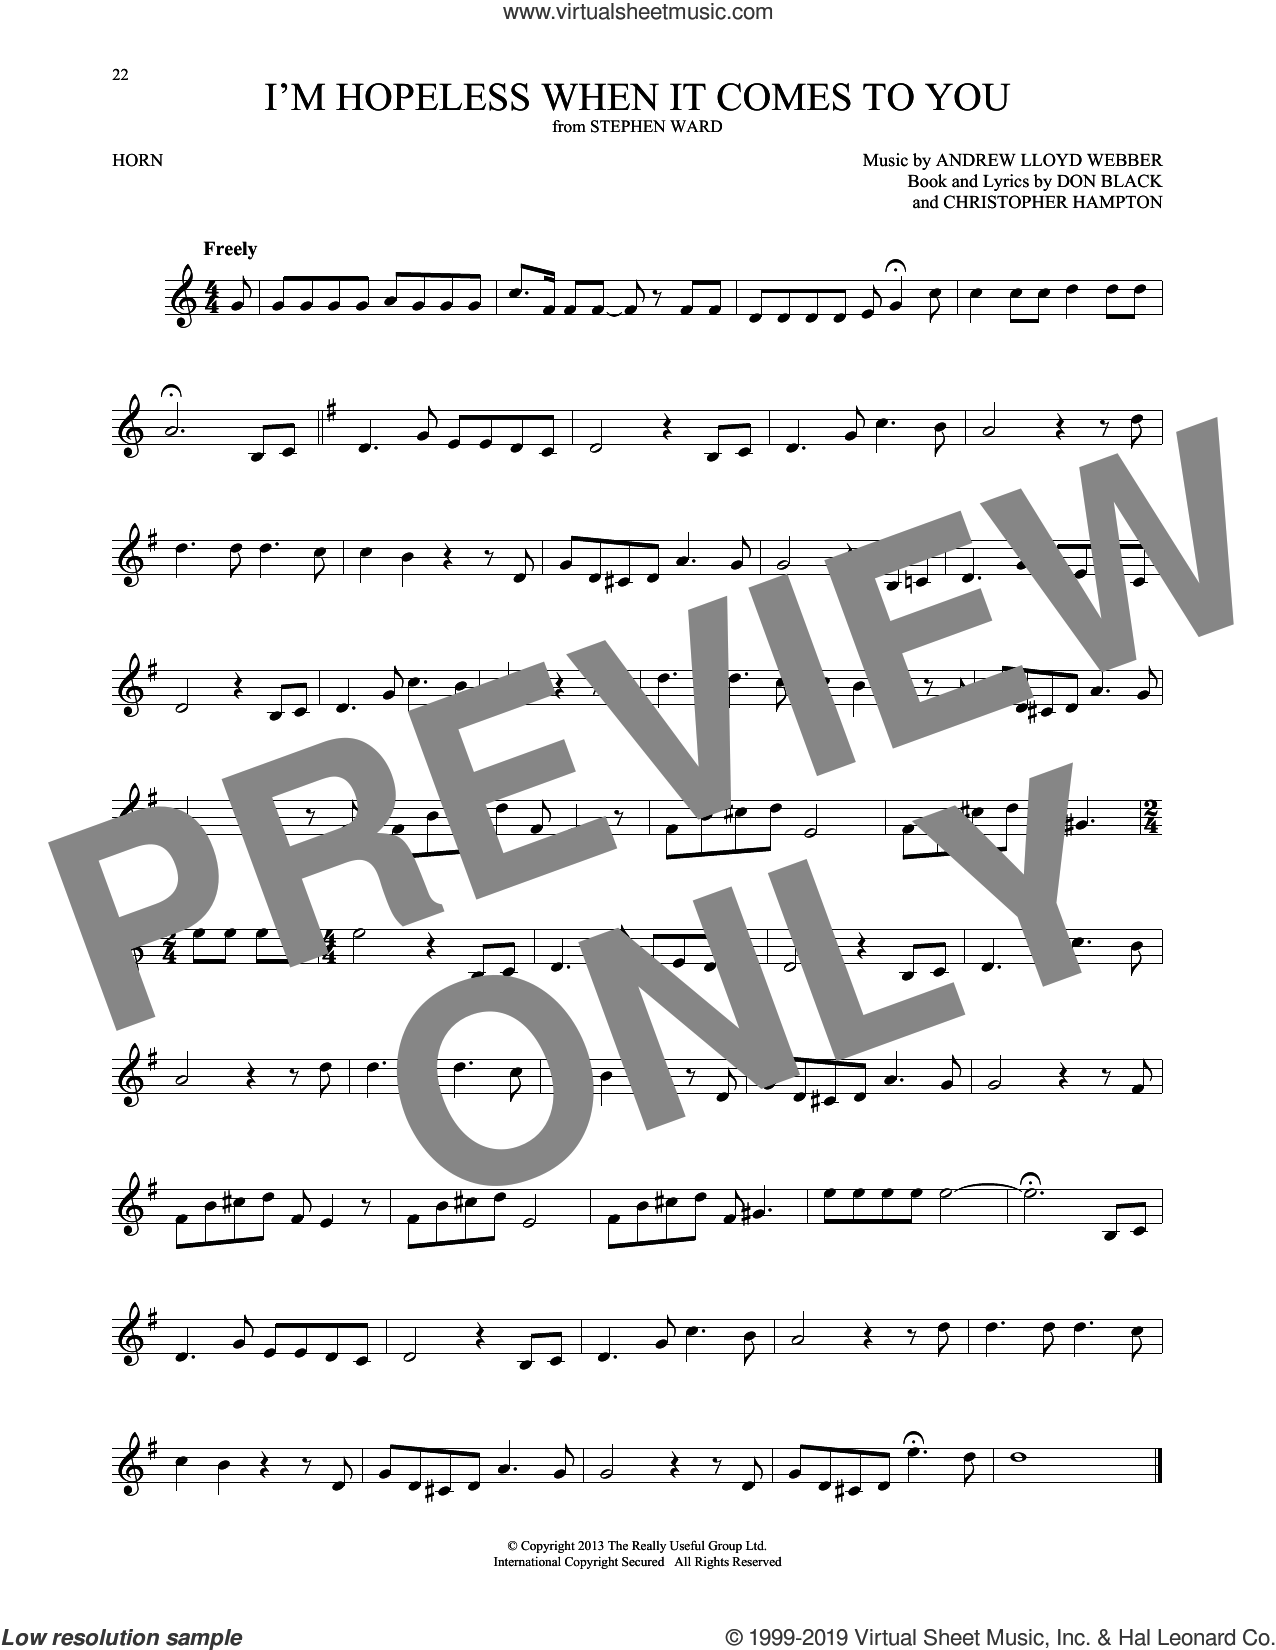 I'm Hopeless When It Comes To You (from Stephen Ward) sheet music for horn solo by Andrew Lloyd Webber, Christopher Hampton and Don Black, intermediate skill level